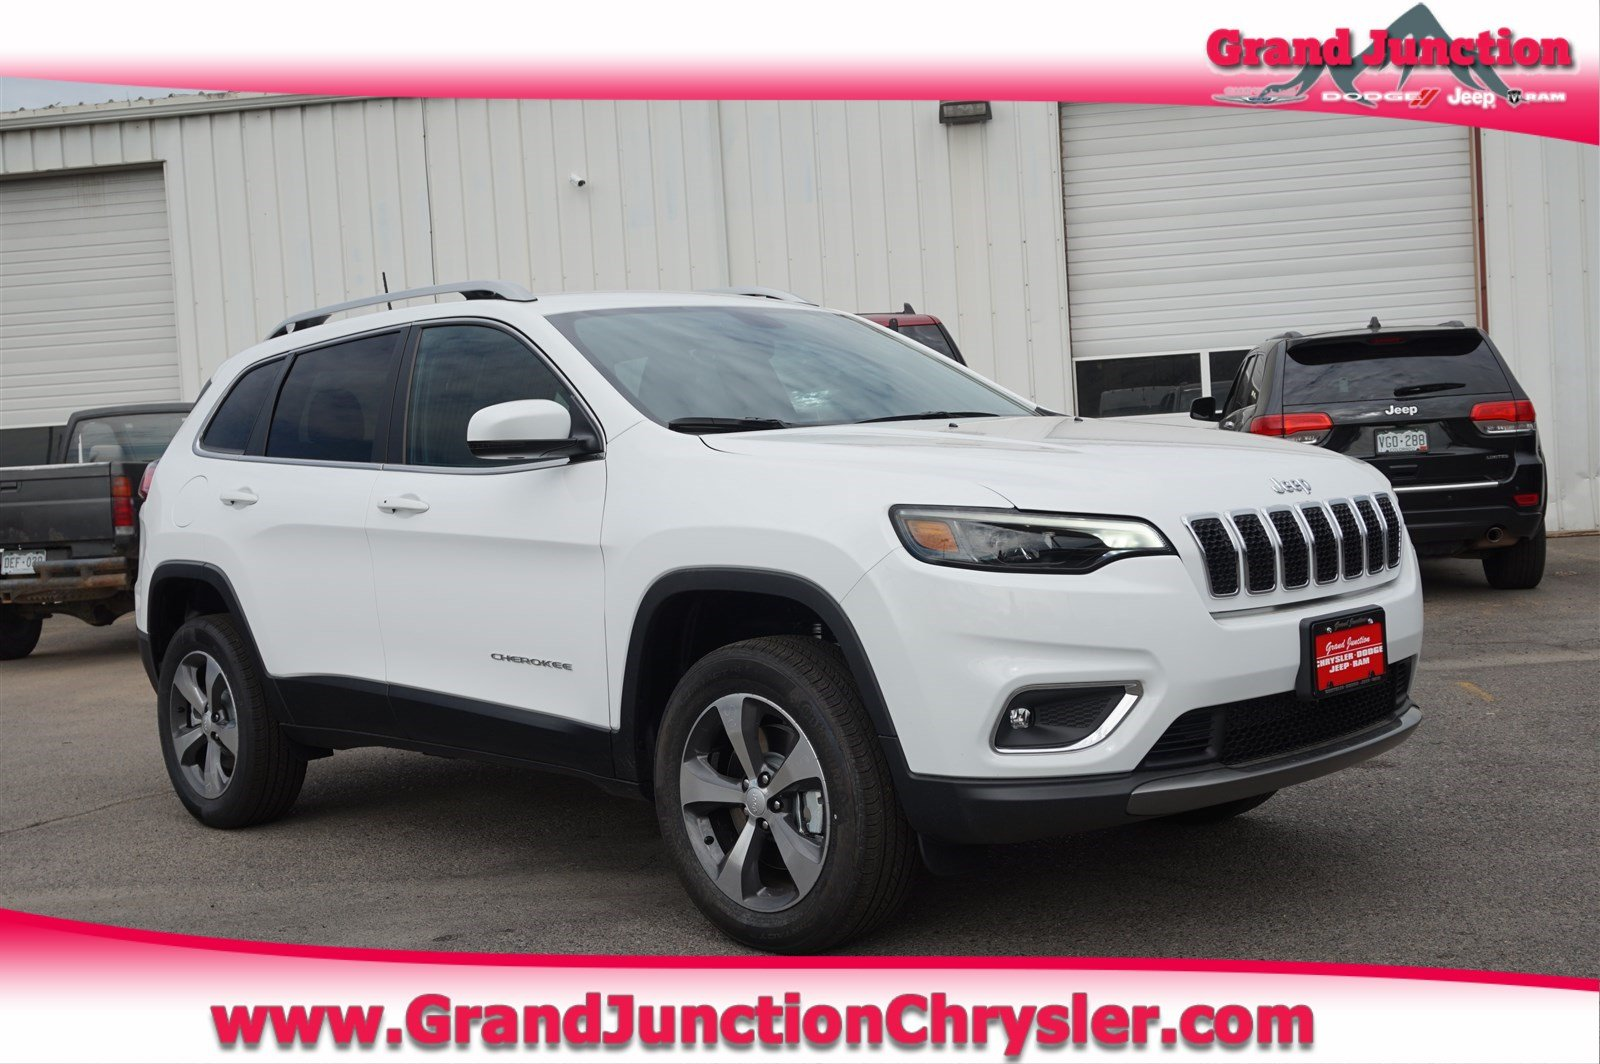 Featured new Chrysler, Dodge, Jeep, and Ram vehicles 2019 Jeep Cherokee LIMITED 4X4 Sport Utility for sale near you in Grand Junction, CO